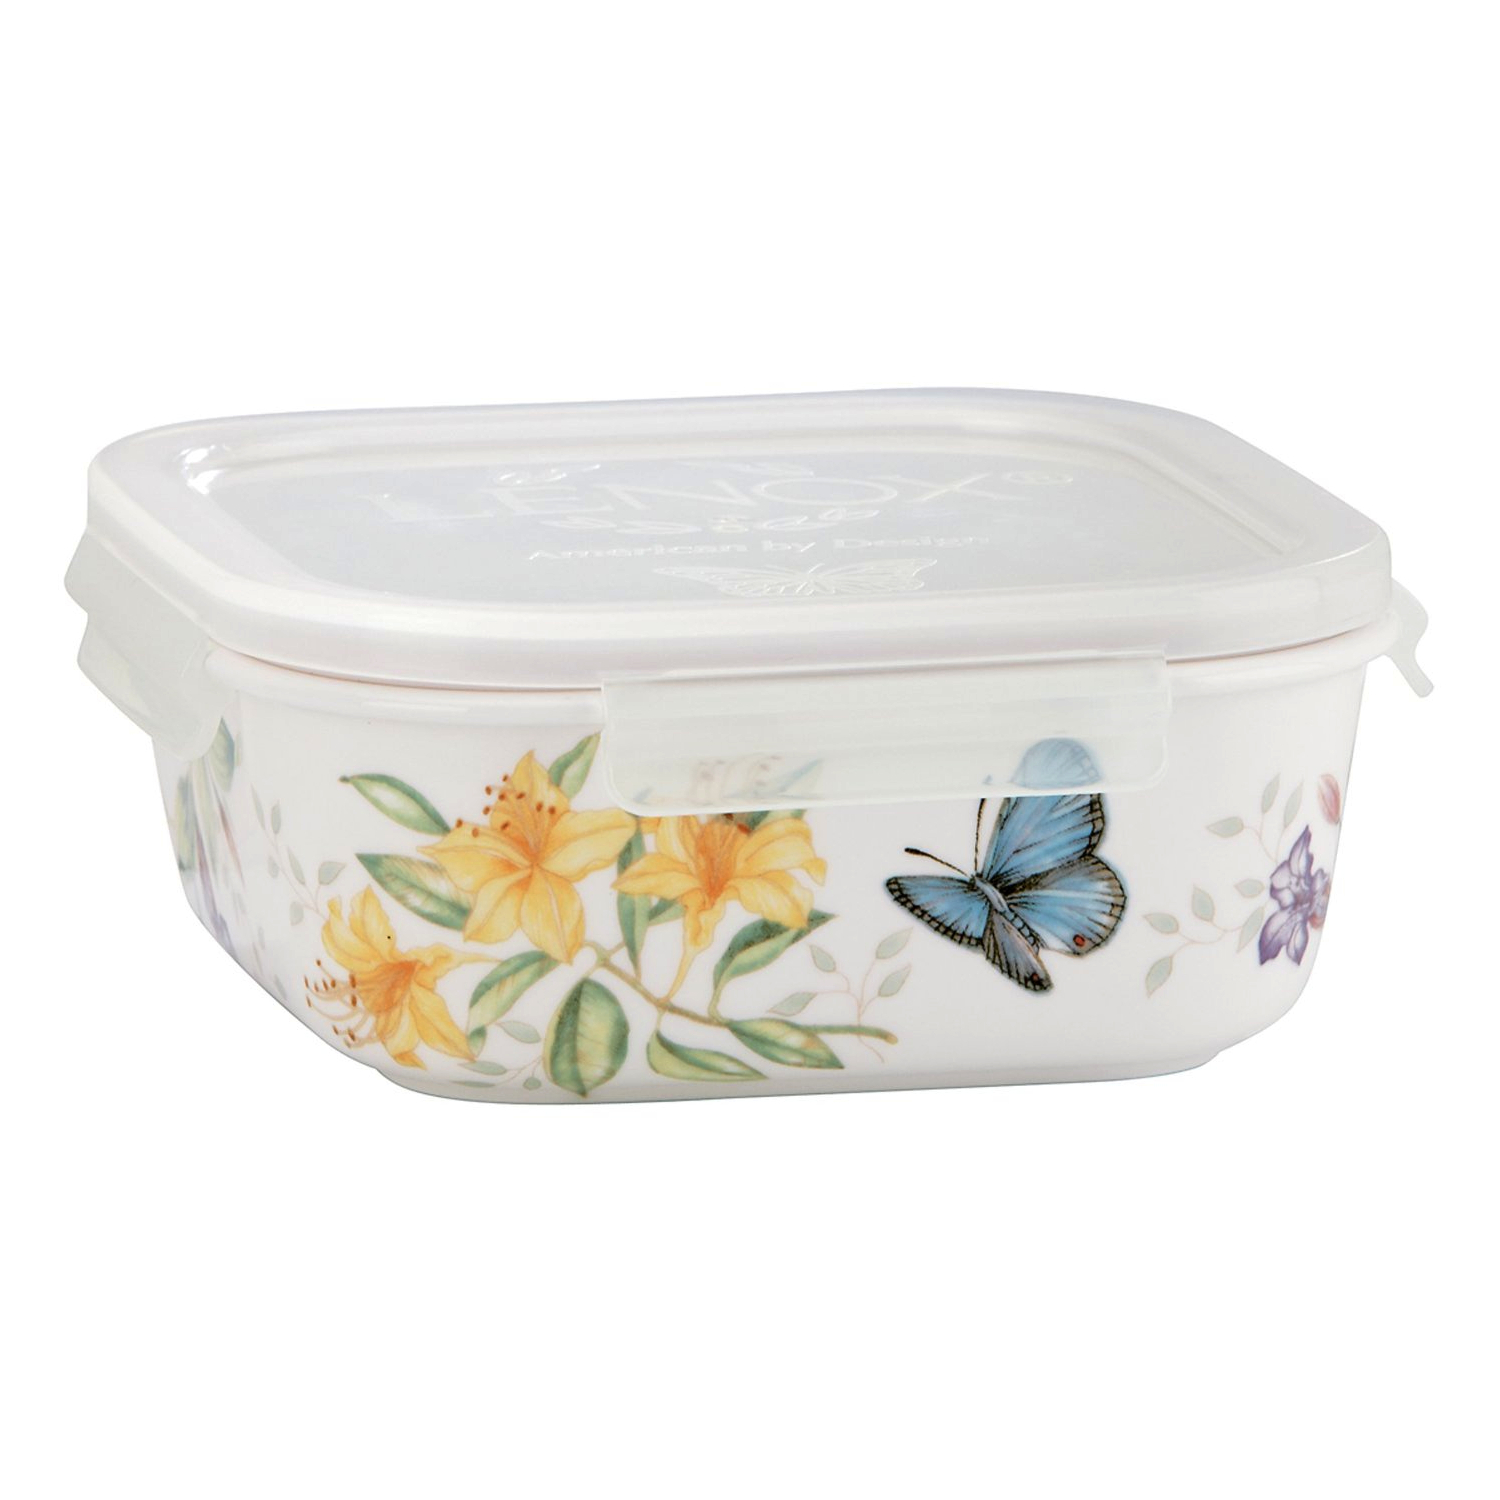 Lenox Butterfly Meadow Square Serve & Store Container